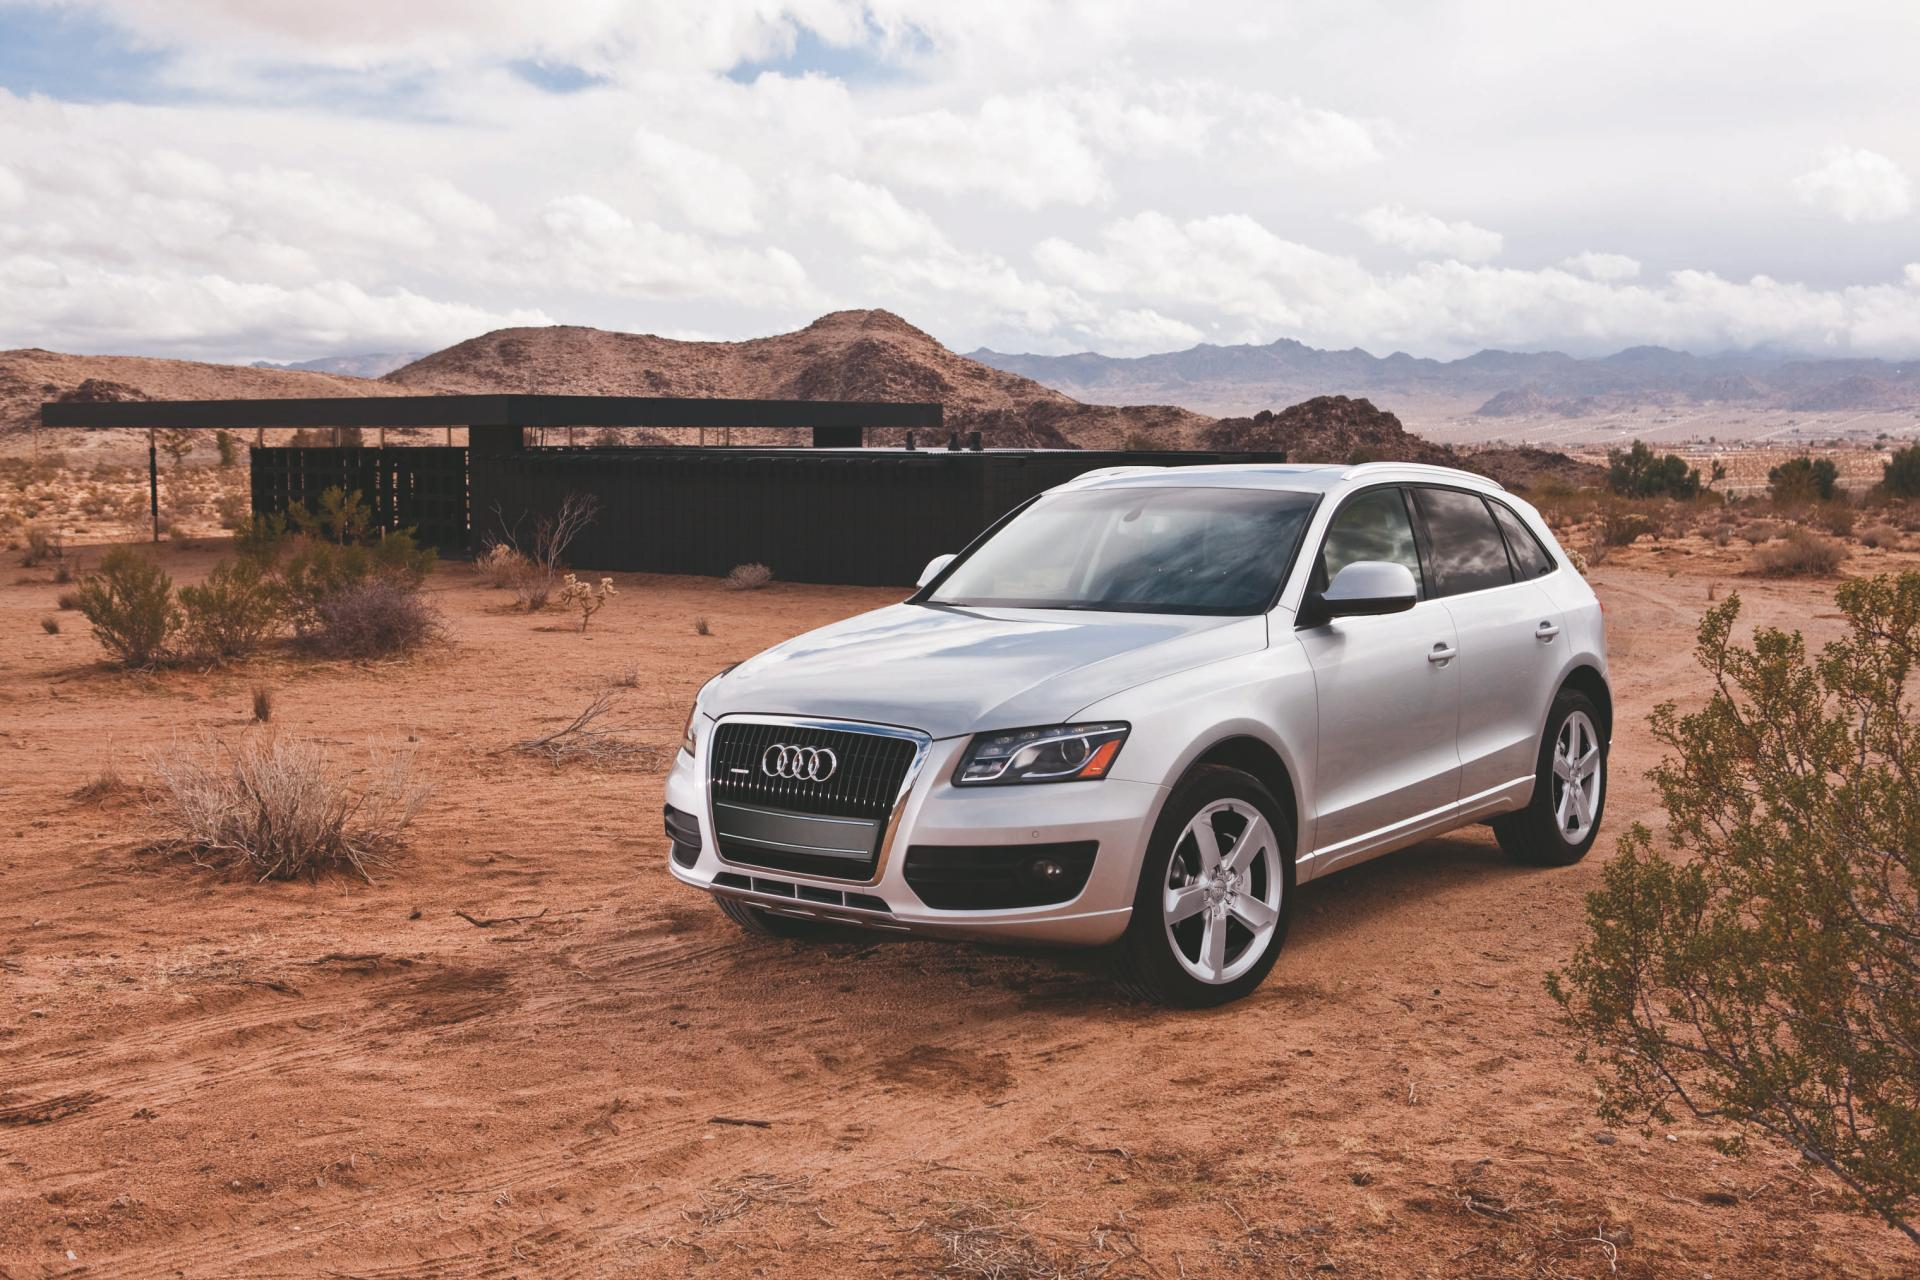 2012 audi q5 technical specifications and data engine dimensions and mechanical details. Black Bedroom Furniture Sets. Home Design Ideas